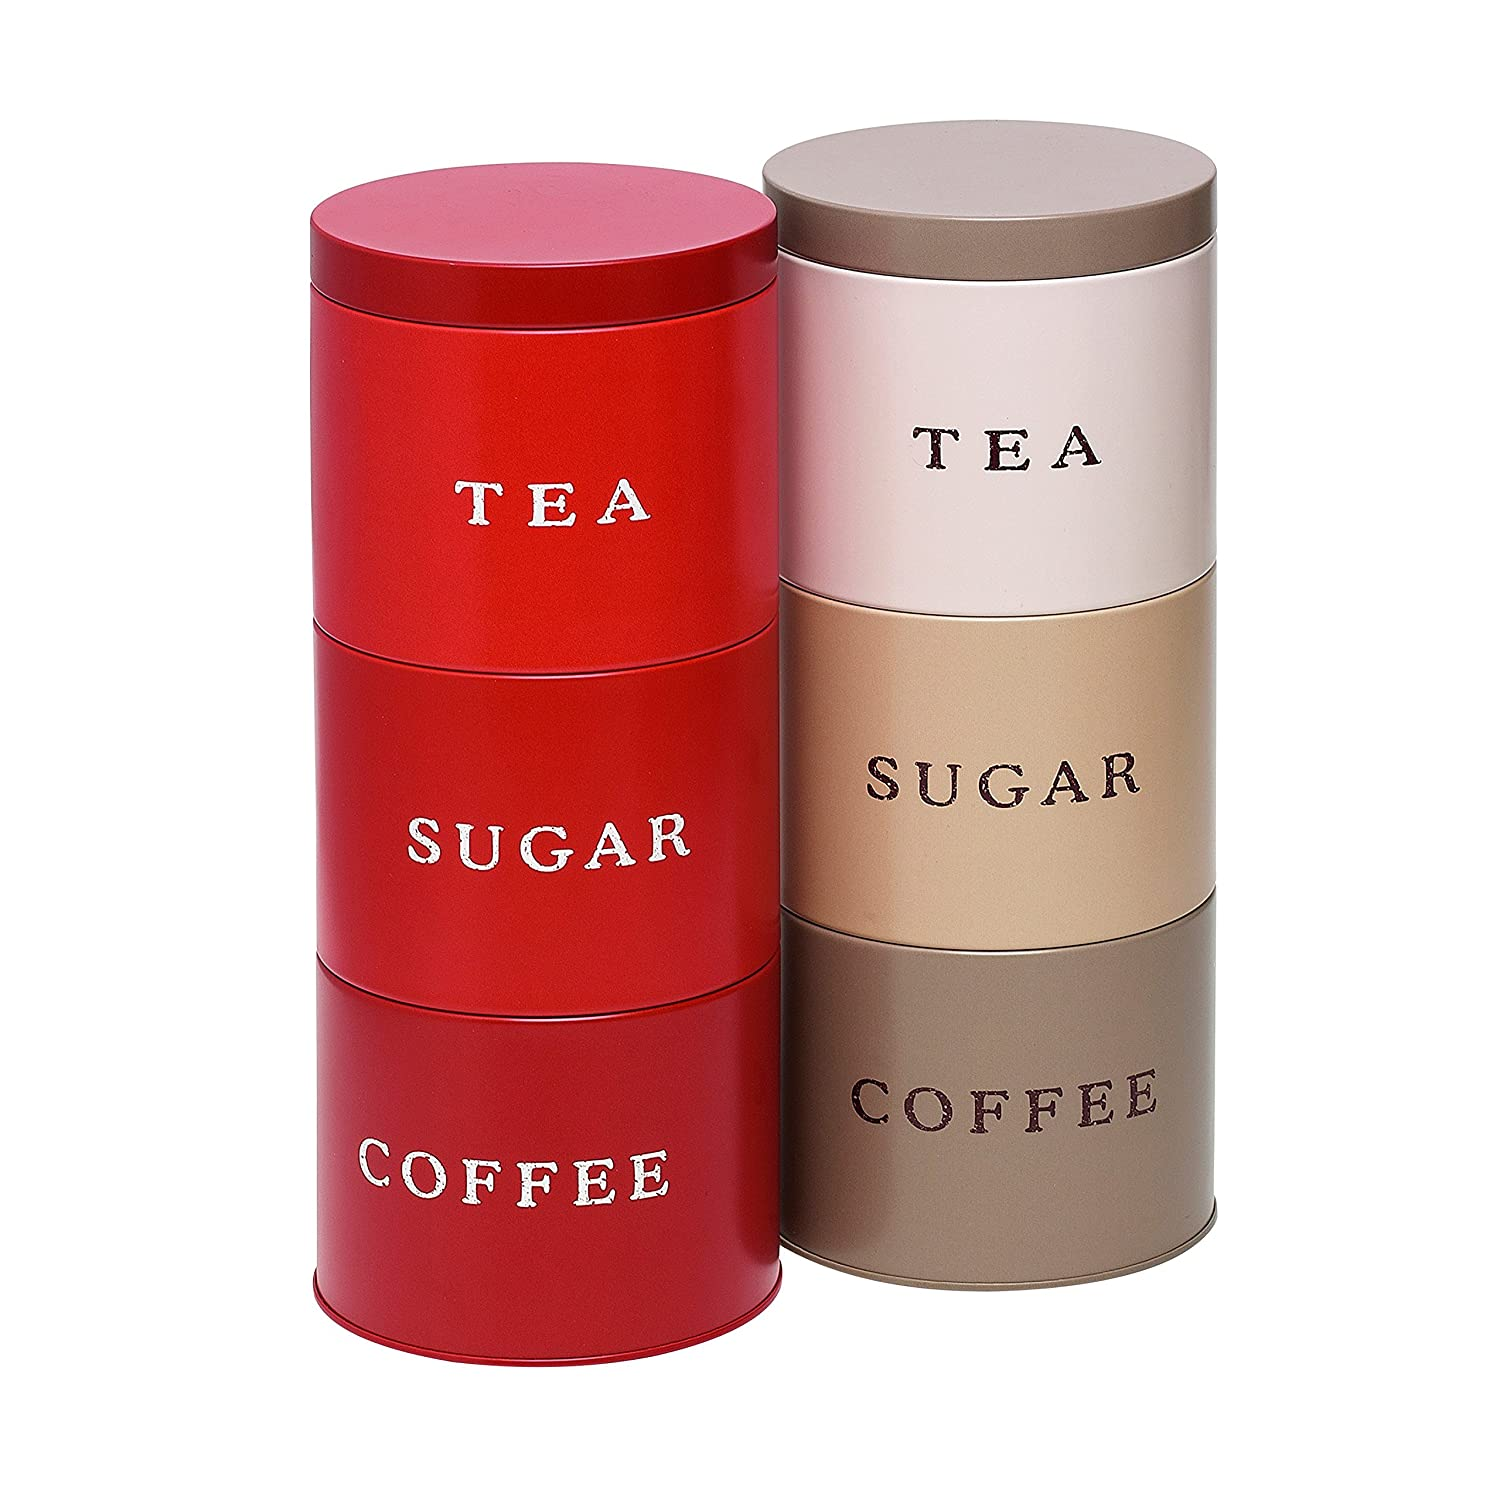 stacking stackable tea coffee sugar food kitchen storage canister